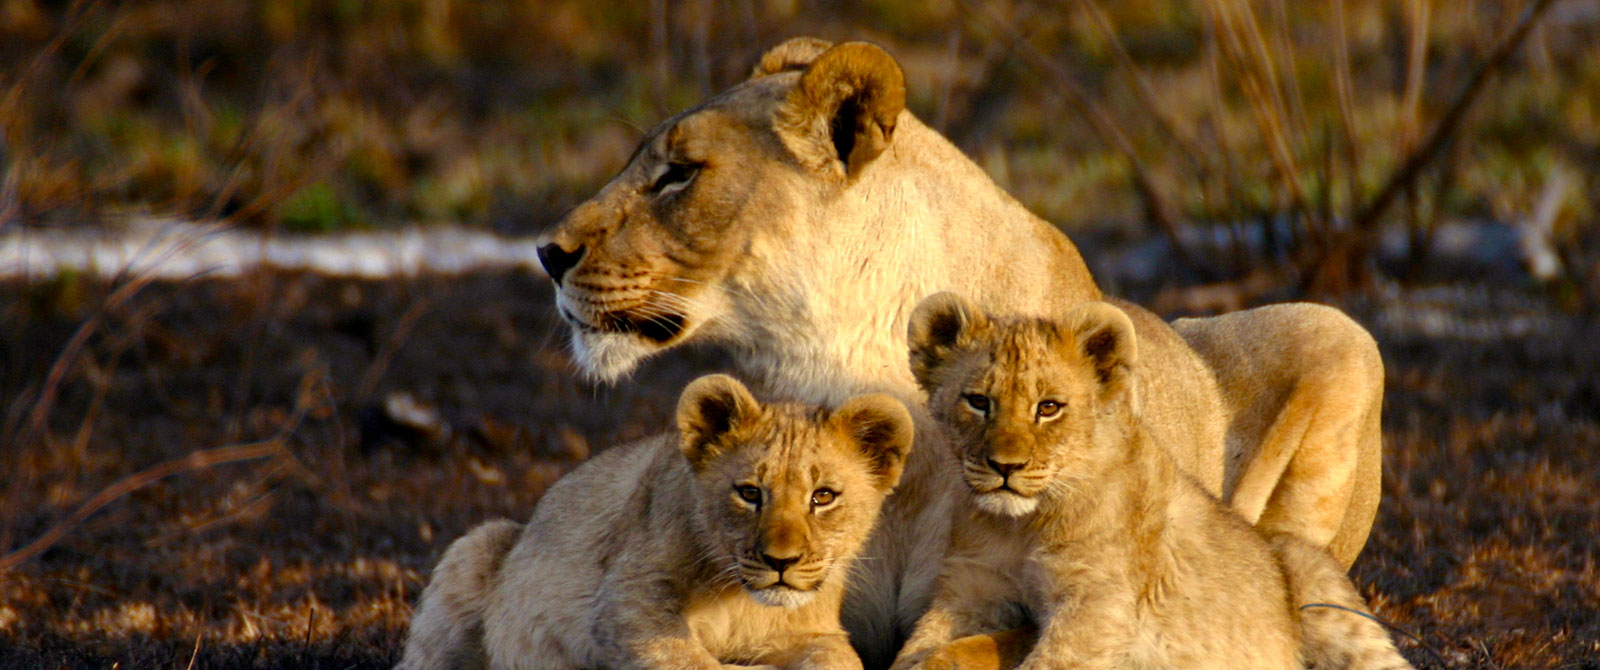 Lions at Jamala Madikwe - Best South Africa Safari Tours